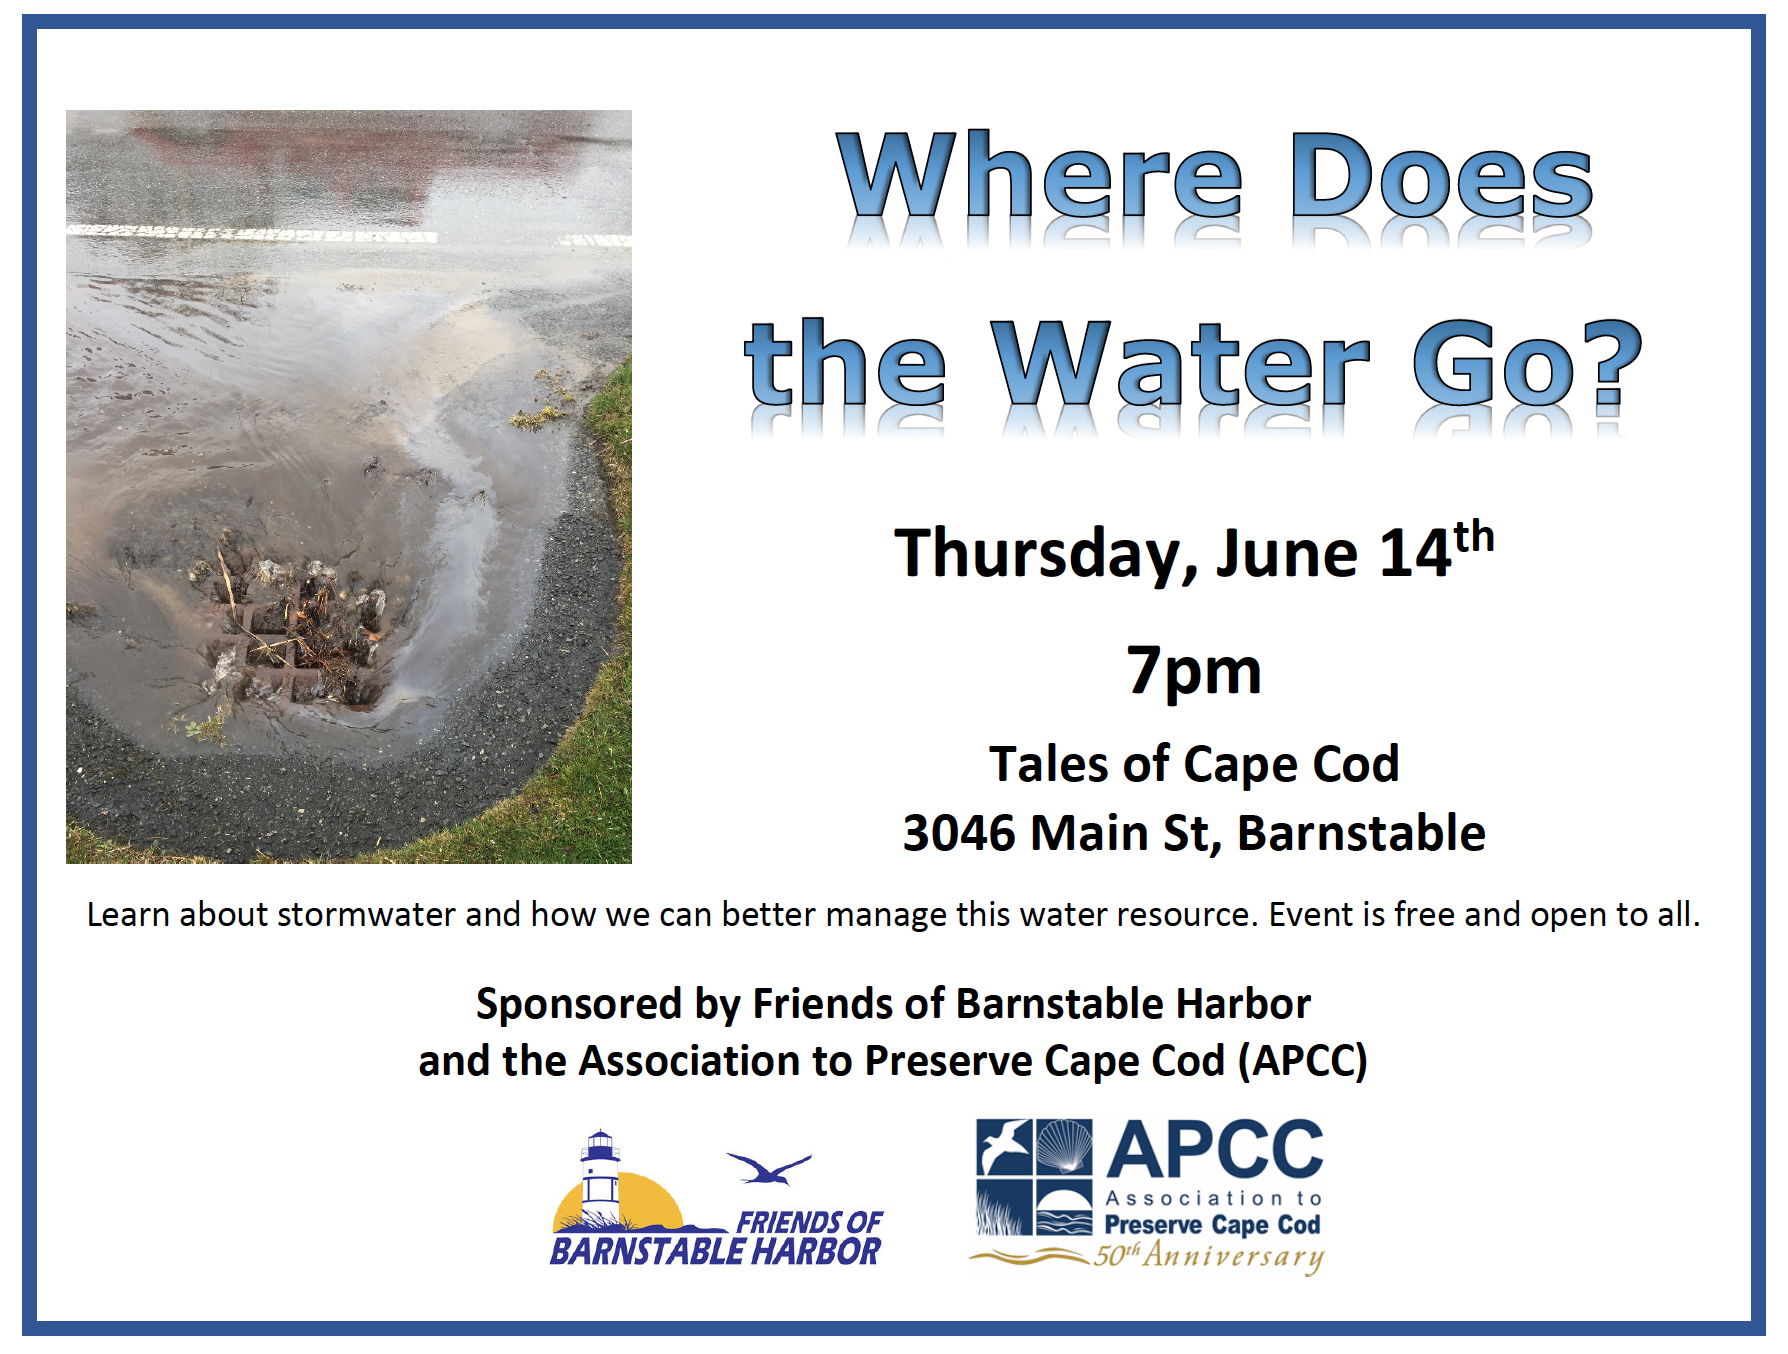 Where Does the Water Go Event